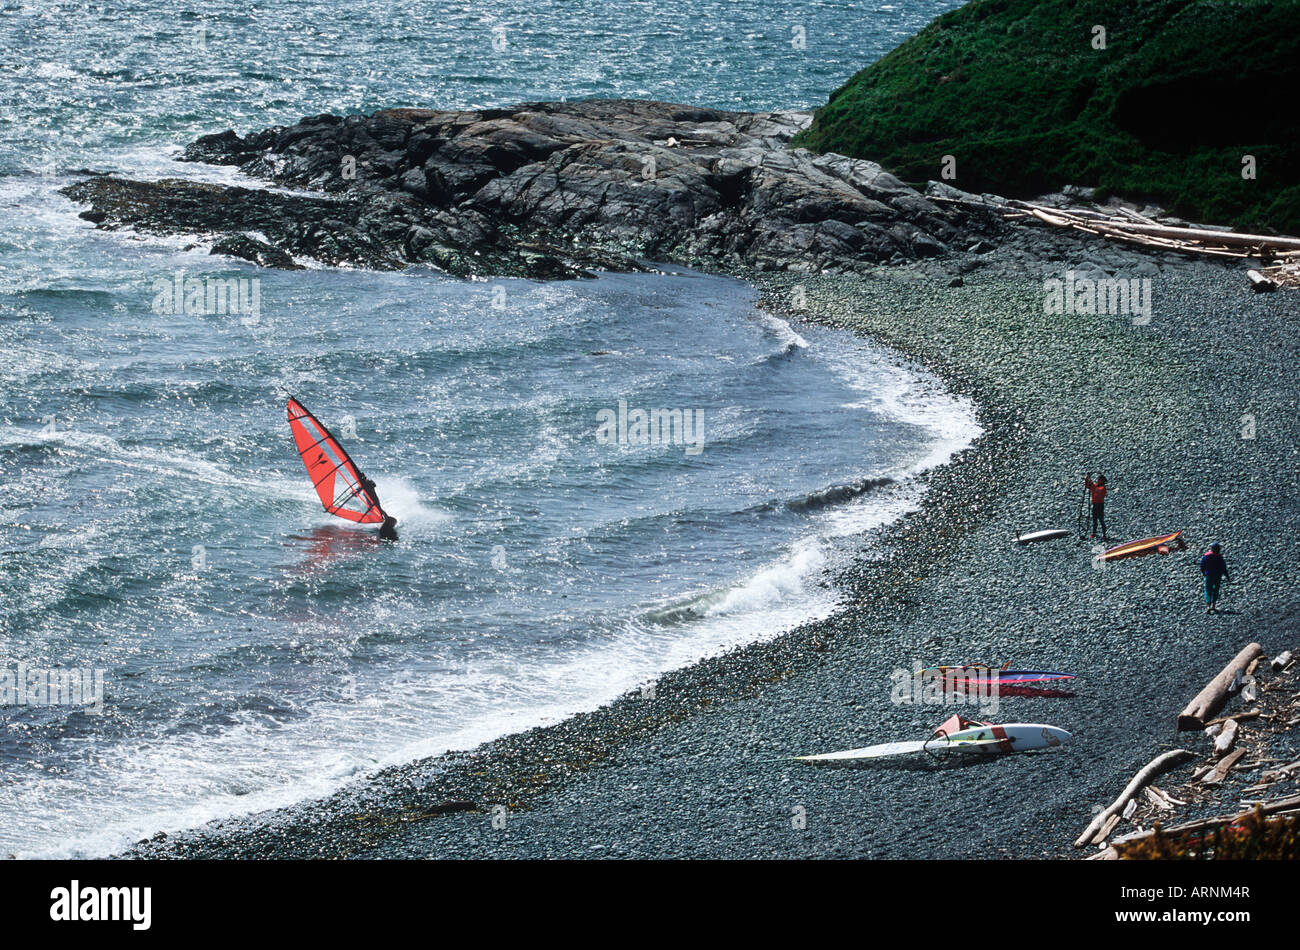 Windsurfer heading towards beach on Dallas Rd, Victoria, Vancouver Island, British Columbia, Canada. - Stock Image